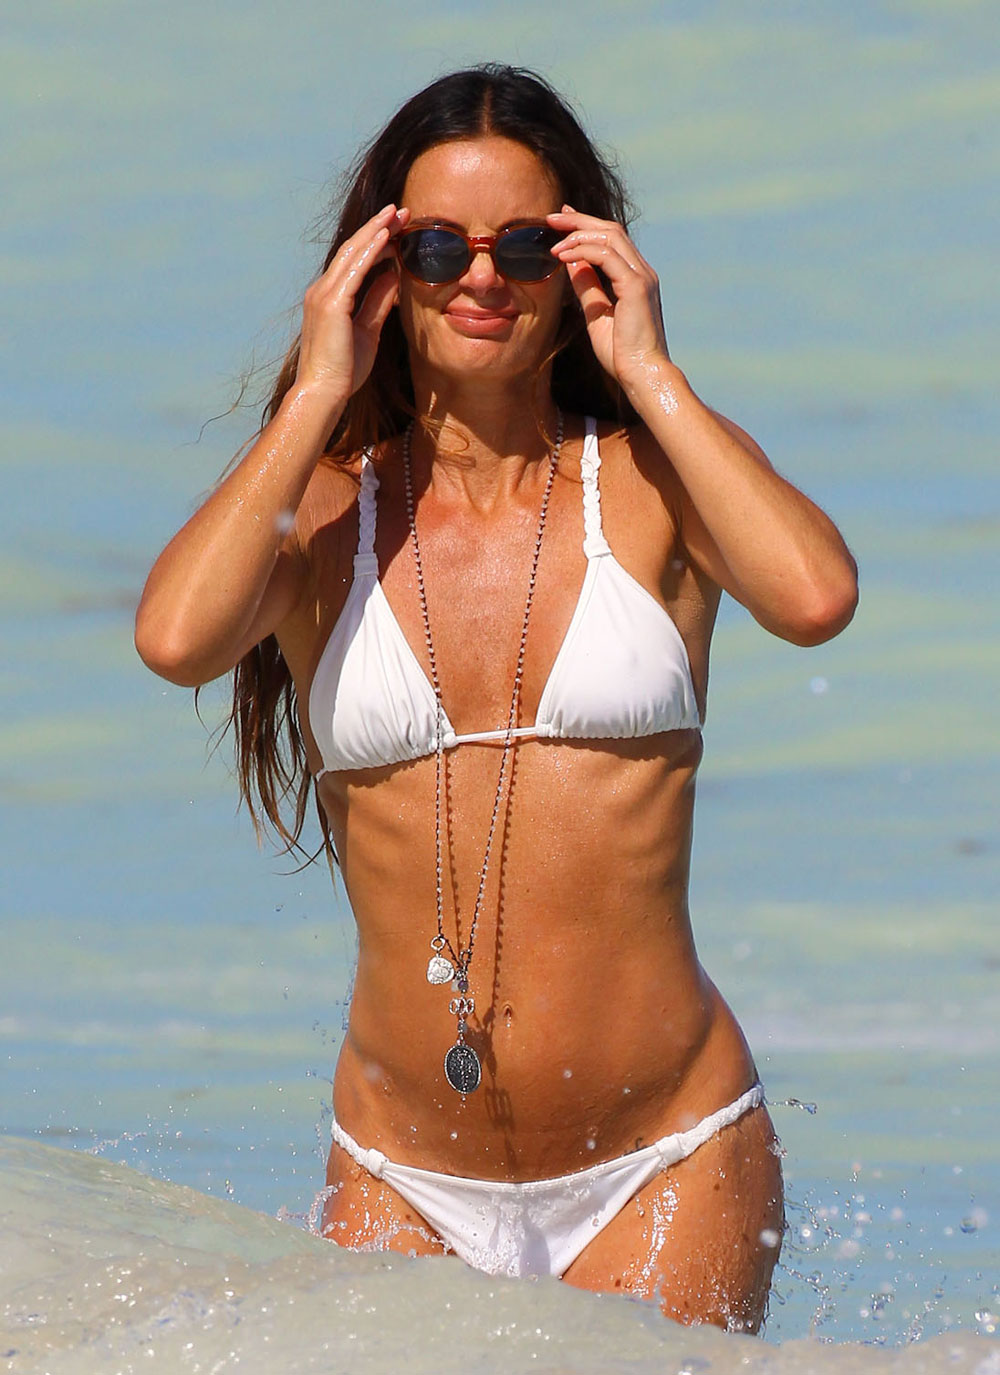 With her slim body and Light brown hairtype without bra (cup size 34B) on the beach in bikini